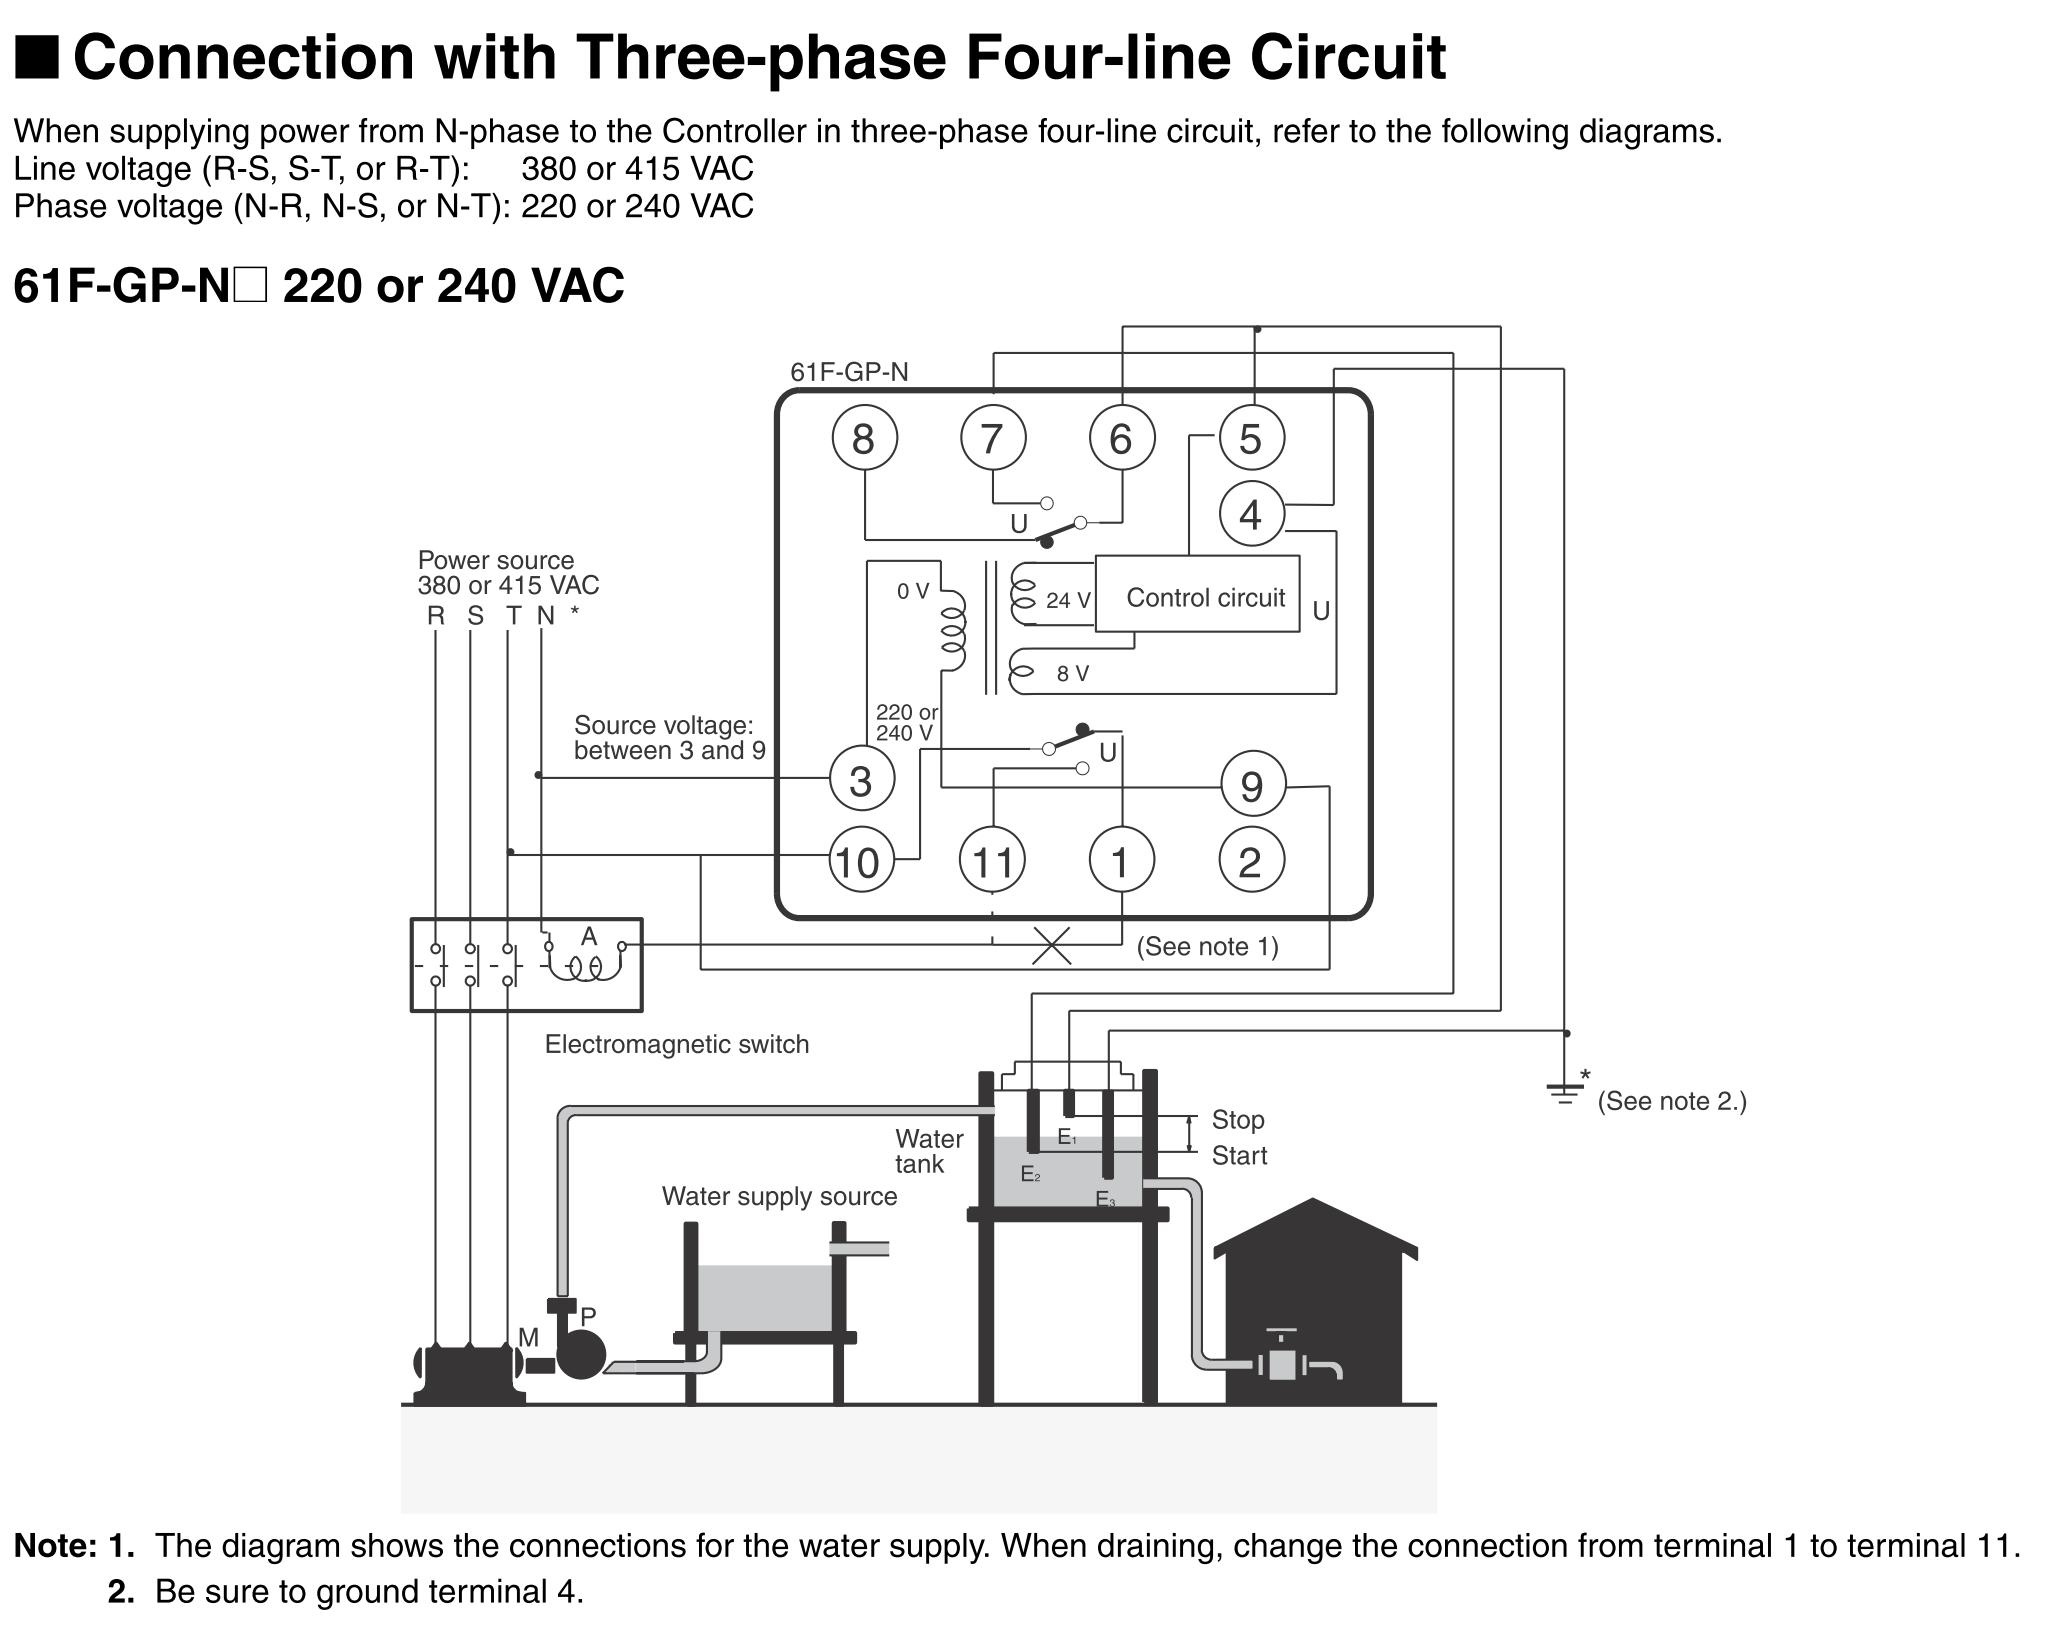 Connection with 3 phase 4 line circuit directory image omron 61f gp n Omron plc Diagrams at gsmx.co